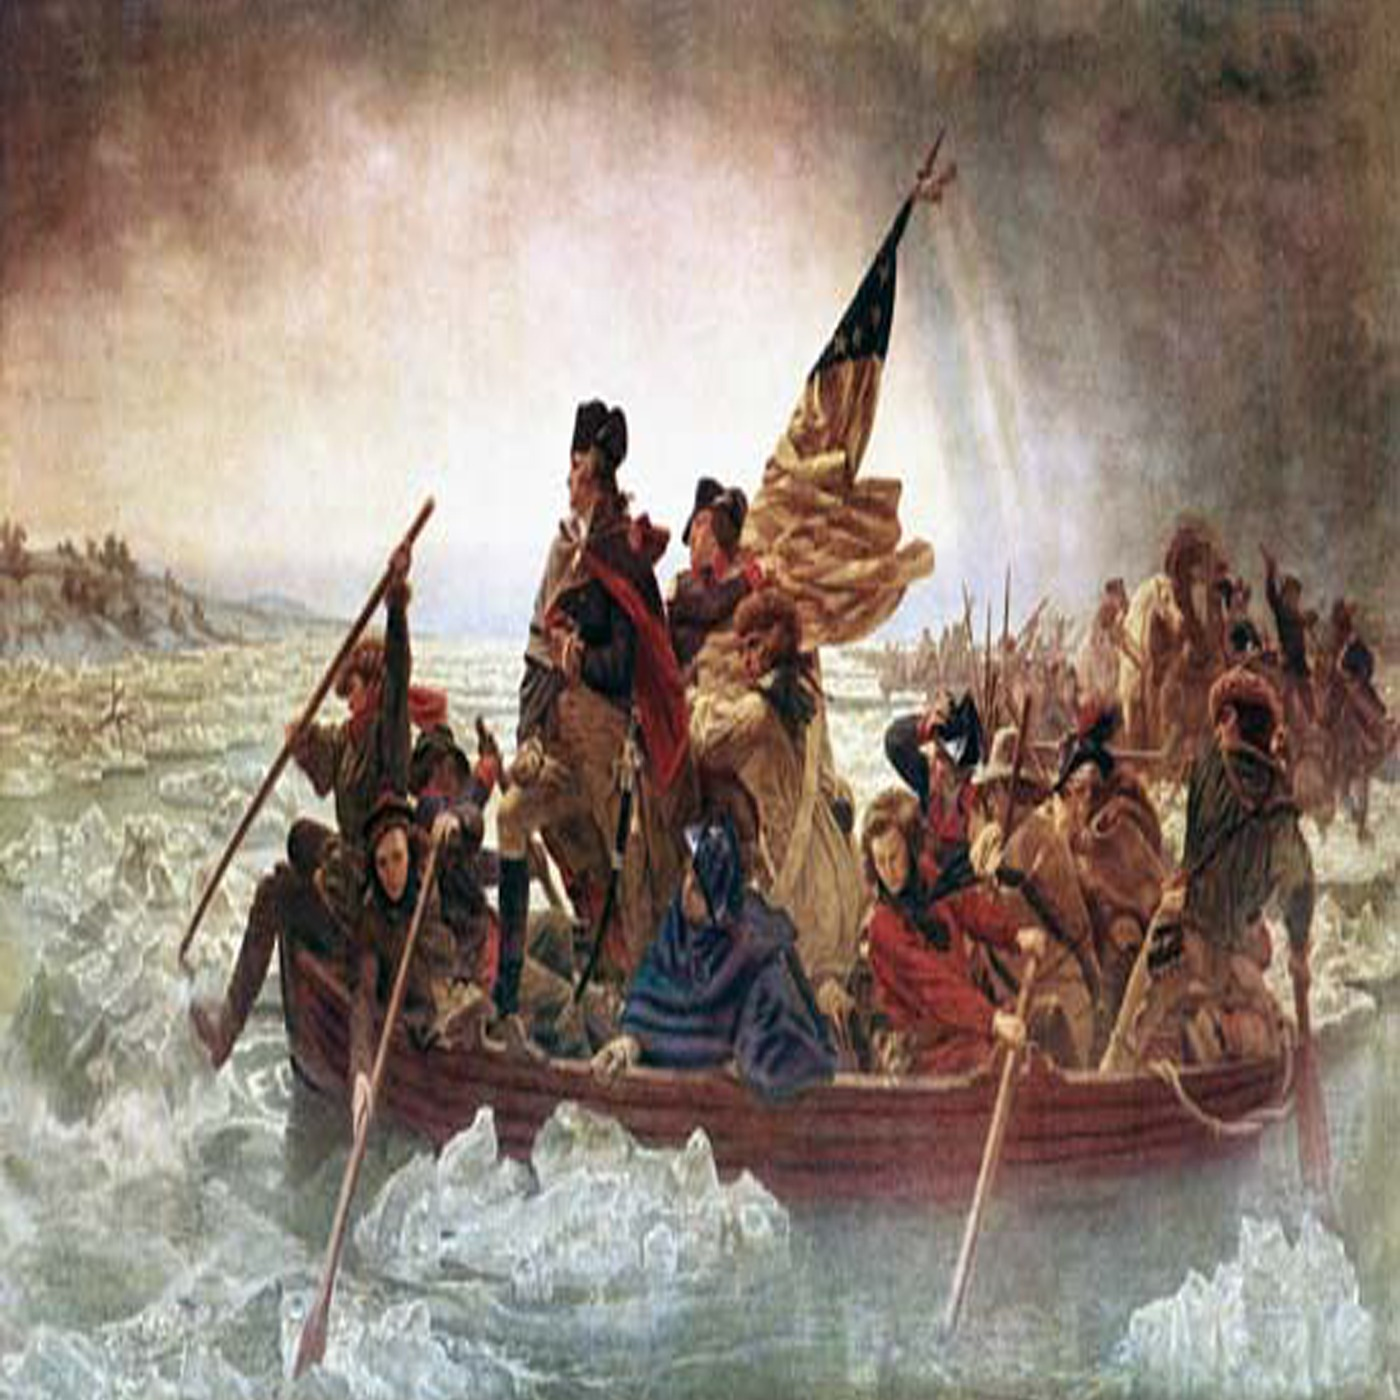 Rediscovering the Christian Roots of the American Revolution in Colonial Williamsburg